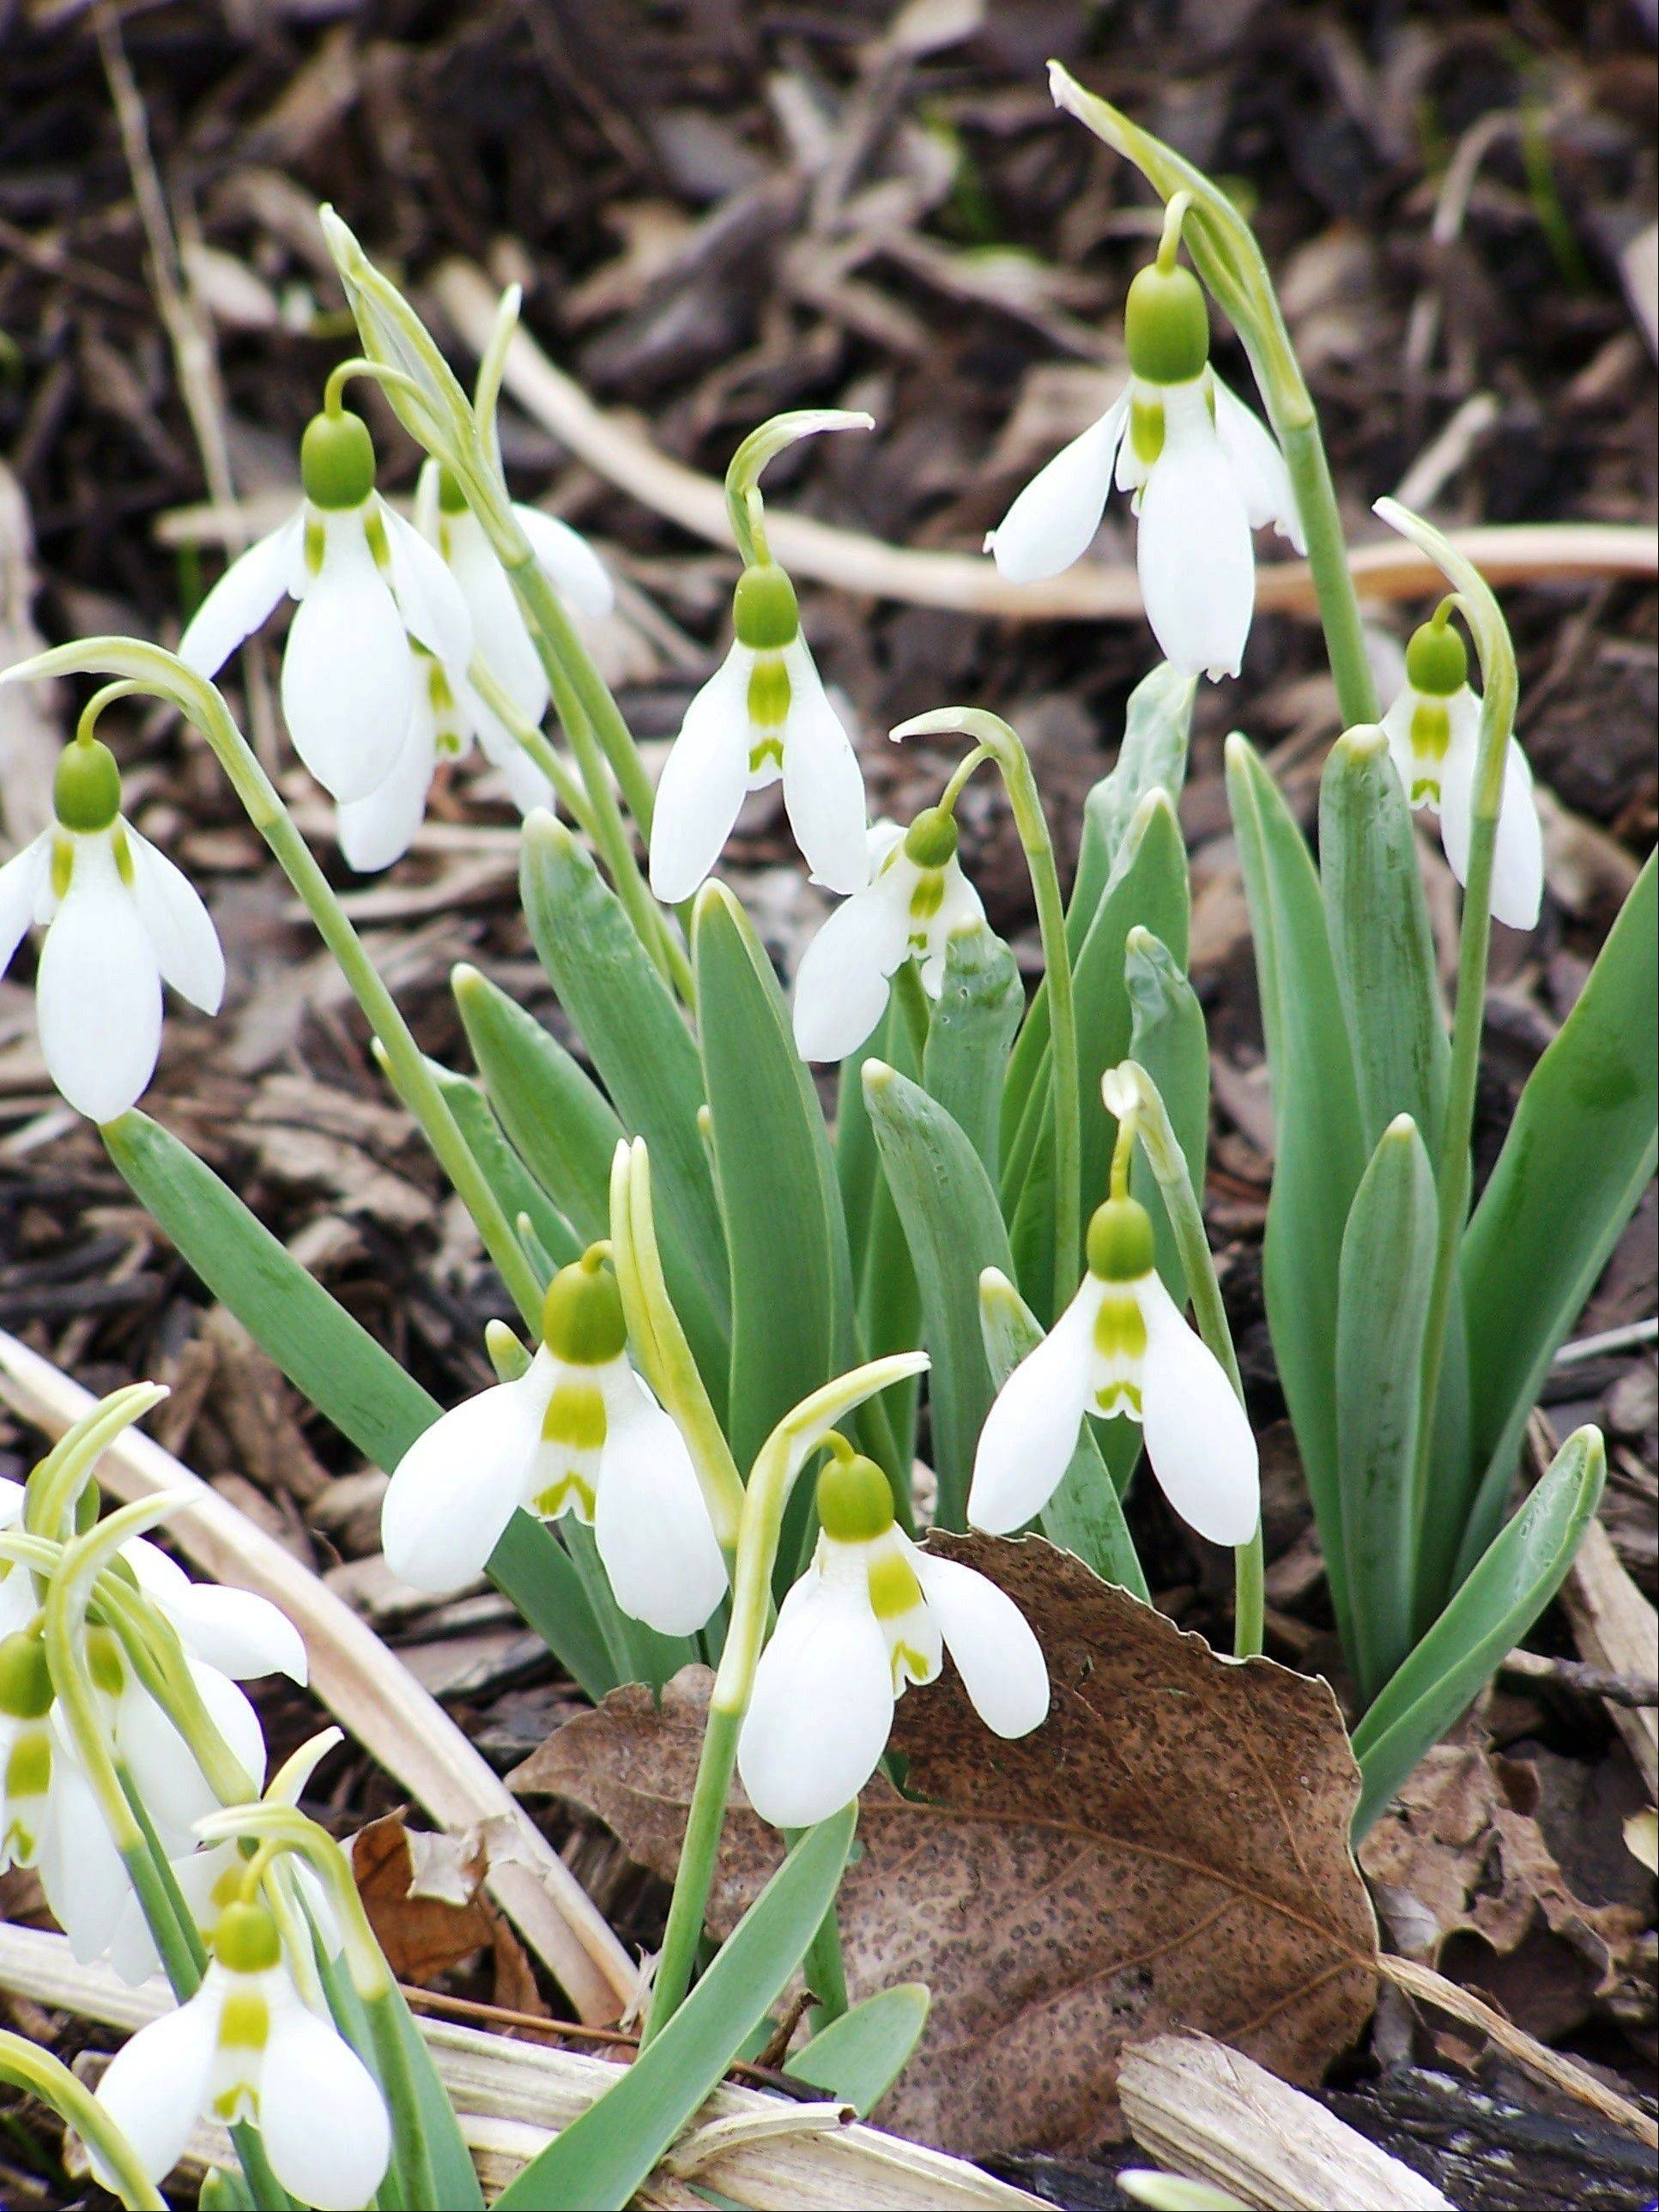 Galanthus, commonly called snowdrops, look good planted in a rock garden or along a pathway.